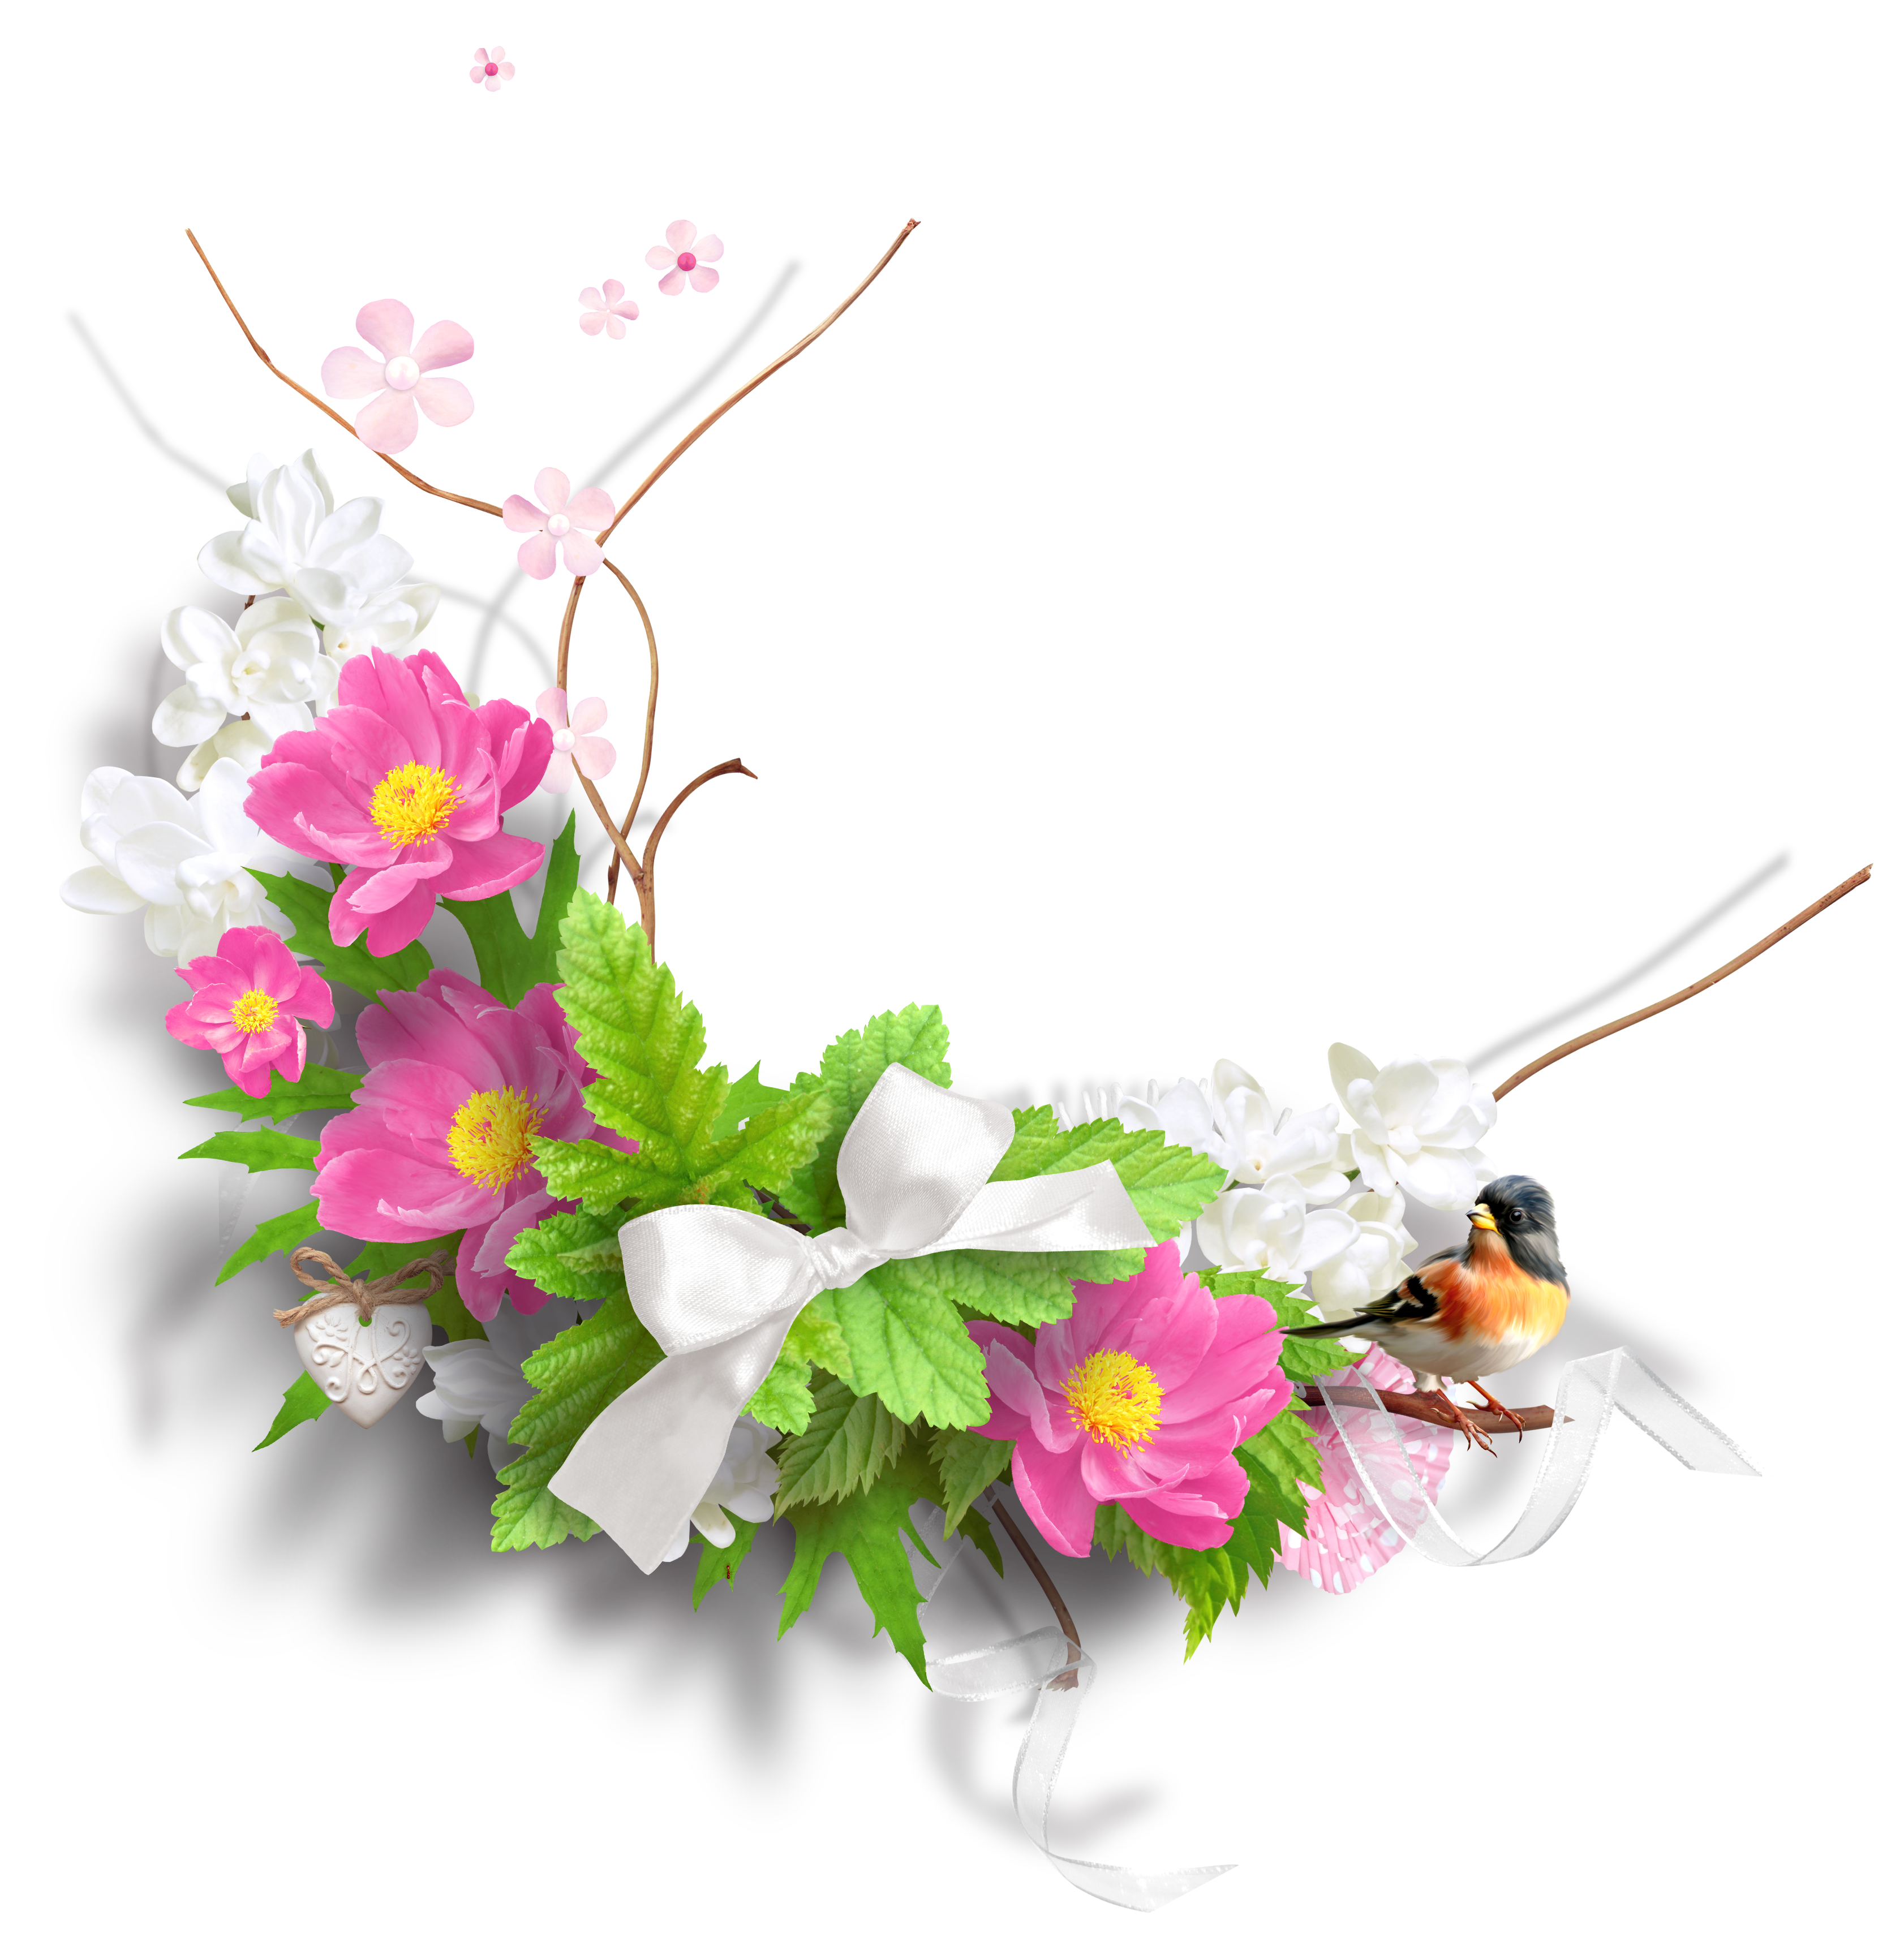 Easter flowers bouquet png. Spring decoration clipart picture